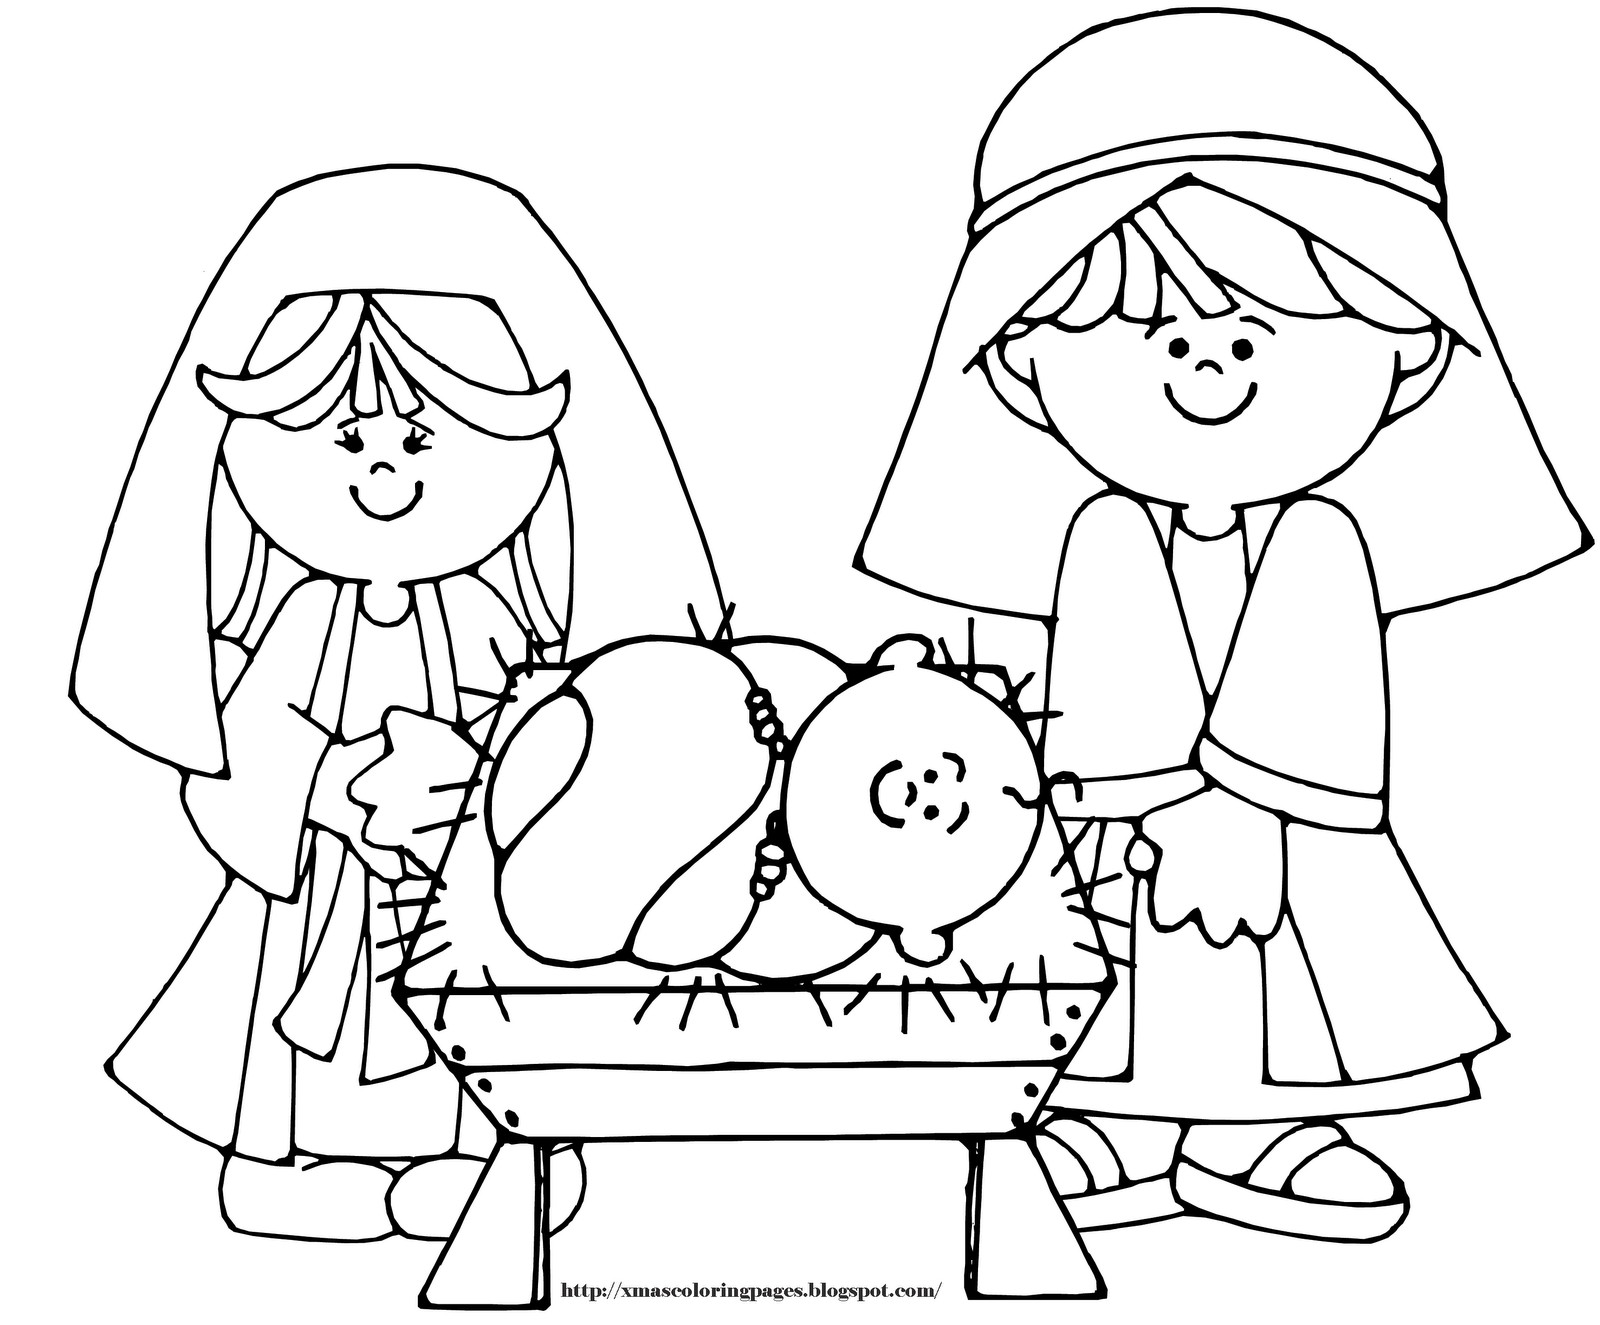 mary joseph and baby jesus coloring page christmas coloring pages nativity precious moments color joseph and coloring jesus page mary baby